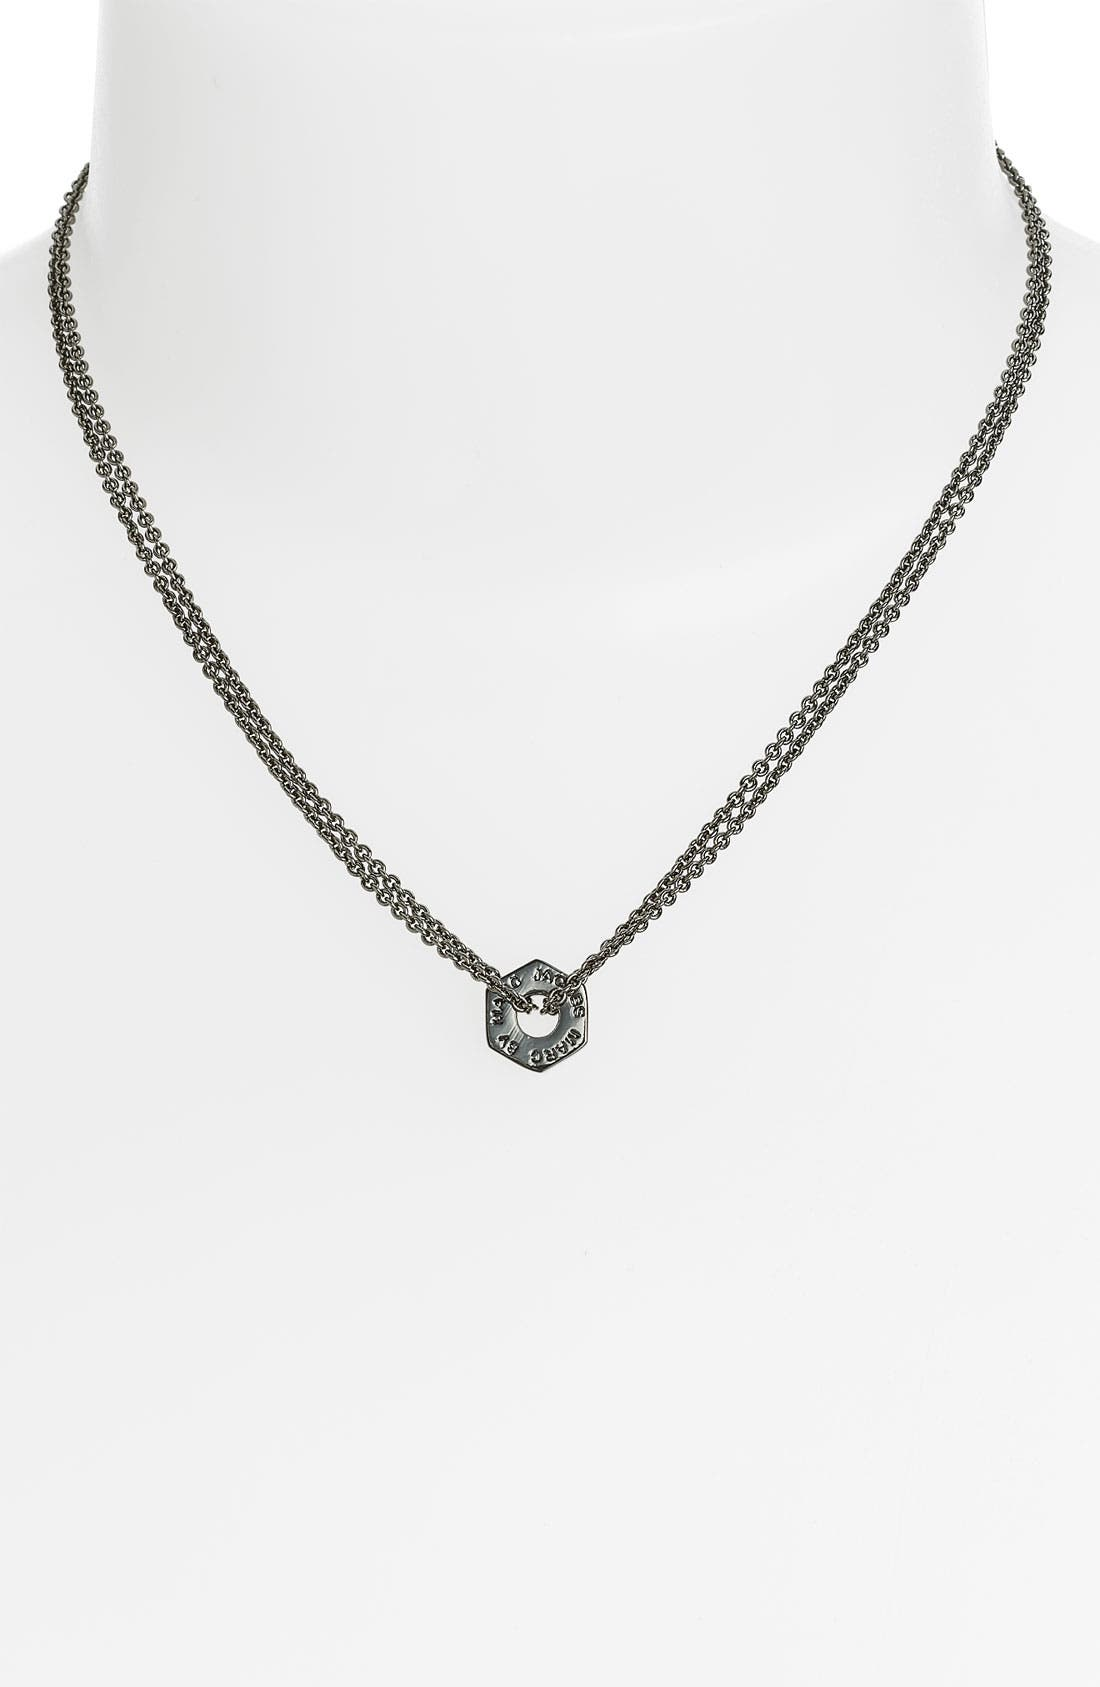 Main Image - MARC BY MARC JACOBS 'Bolts' Pendant Necklace